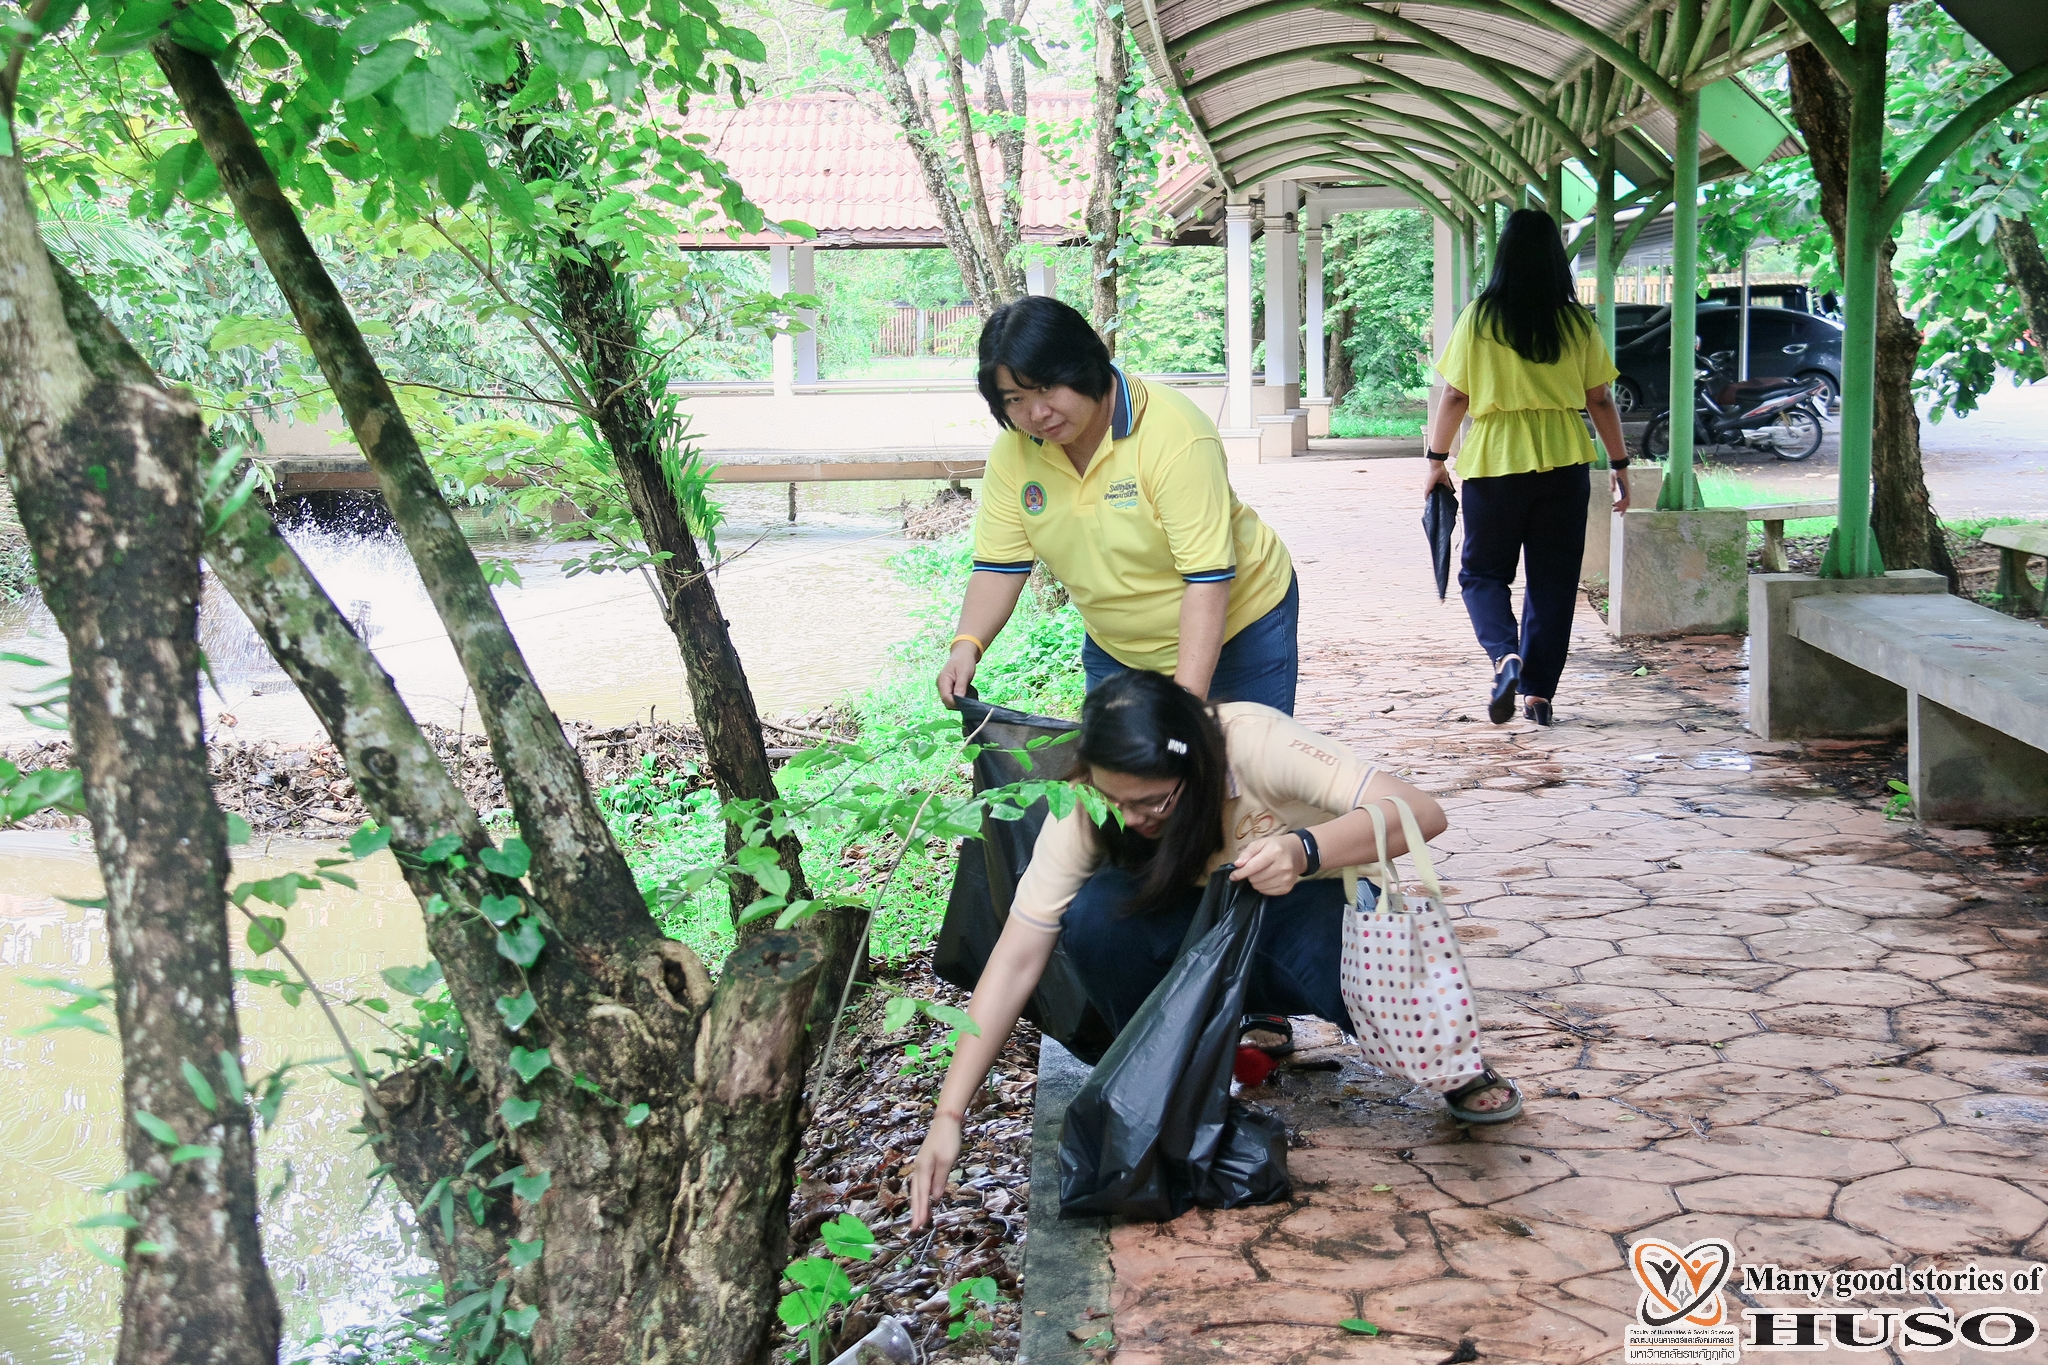 HUSO PKRU Keep Phuket Clean by our hands and Hearts 5 July 2018 7